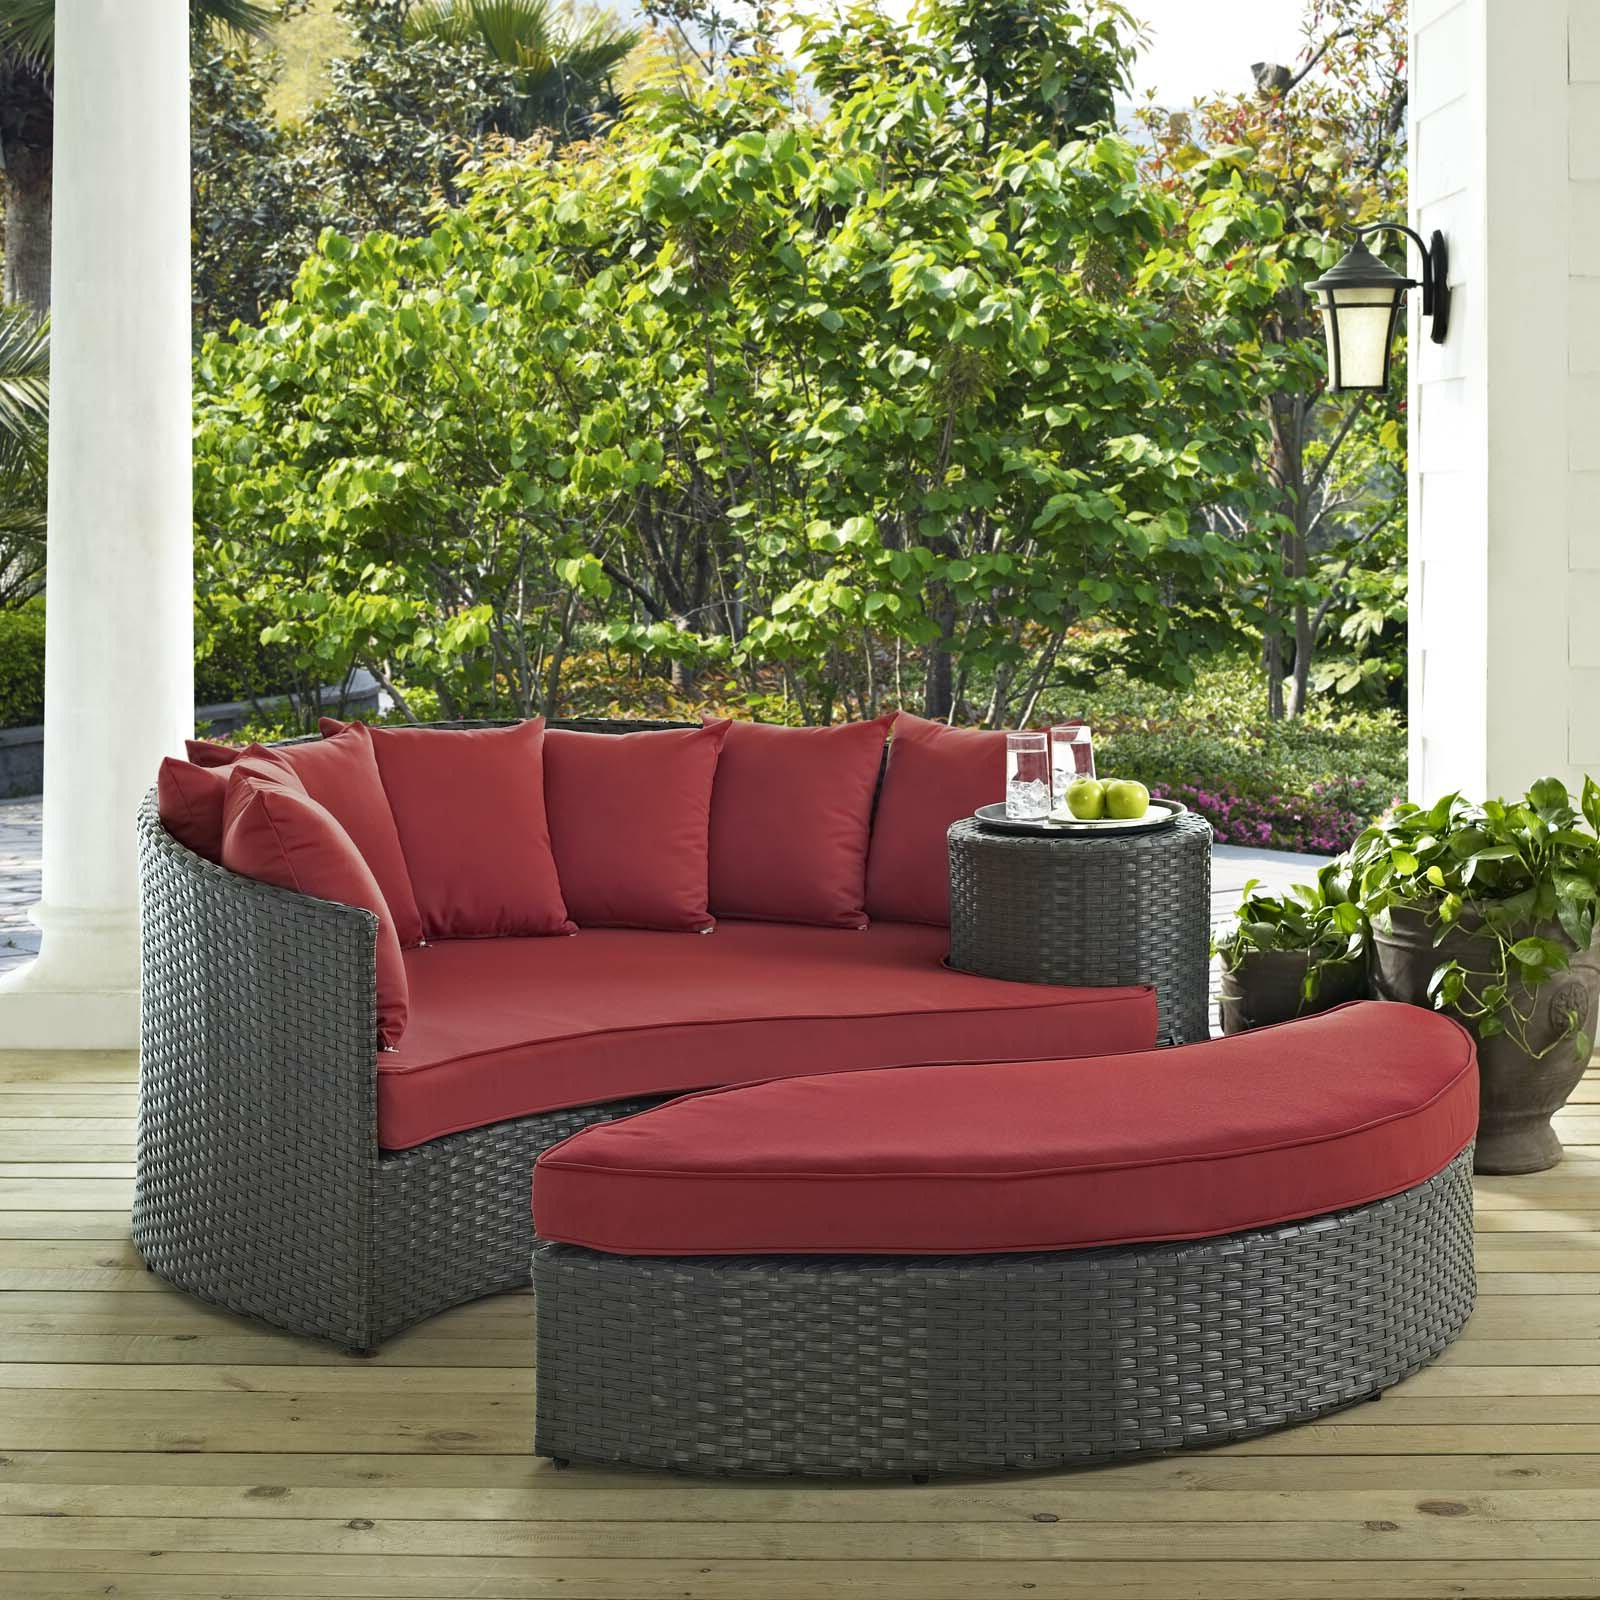 Aubrie Patio Daybeds With Cushions Intended For Popular Tripp Patio Daybed With Cushions (View 5 of 25)